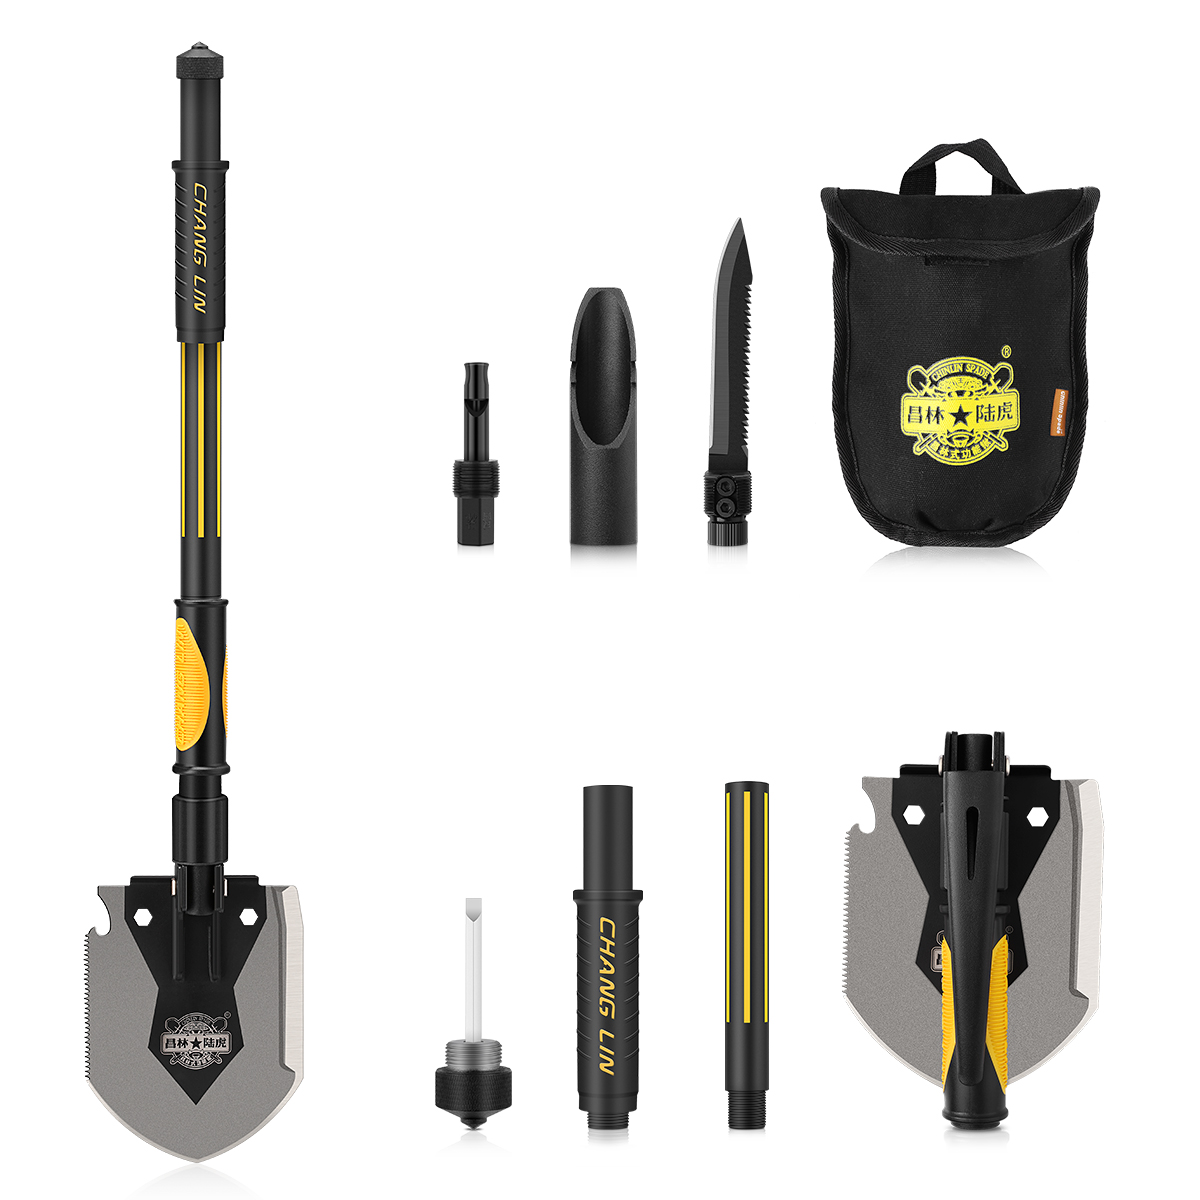 CHANGLIN SPADE 1603 Multi-function Folding Shovel by